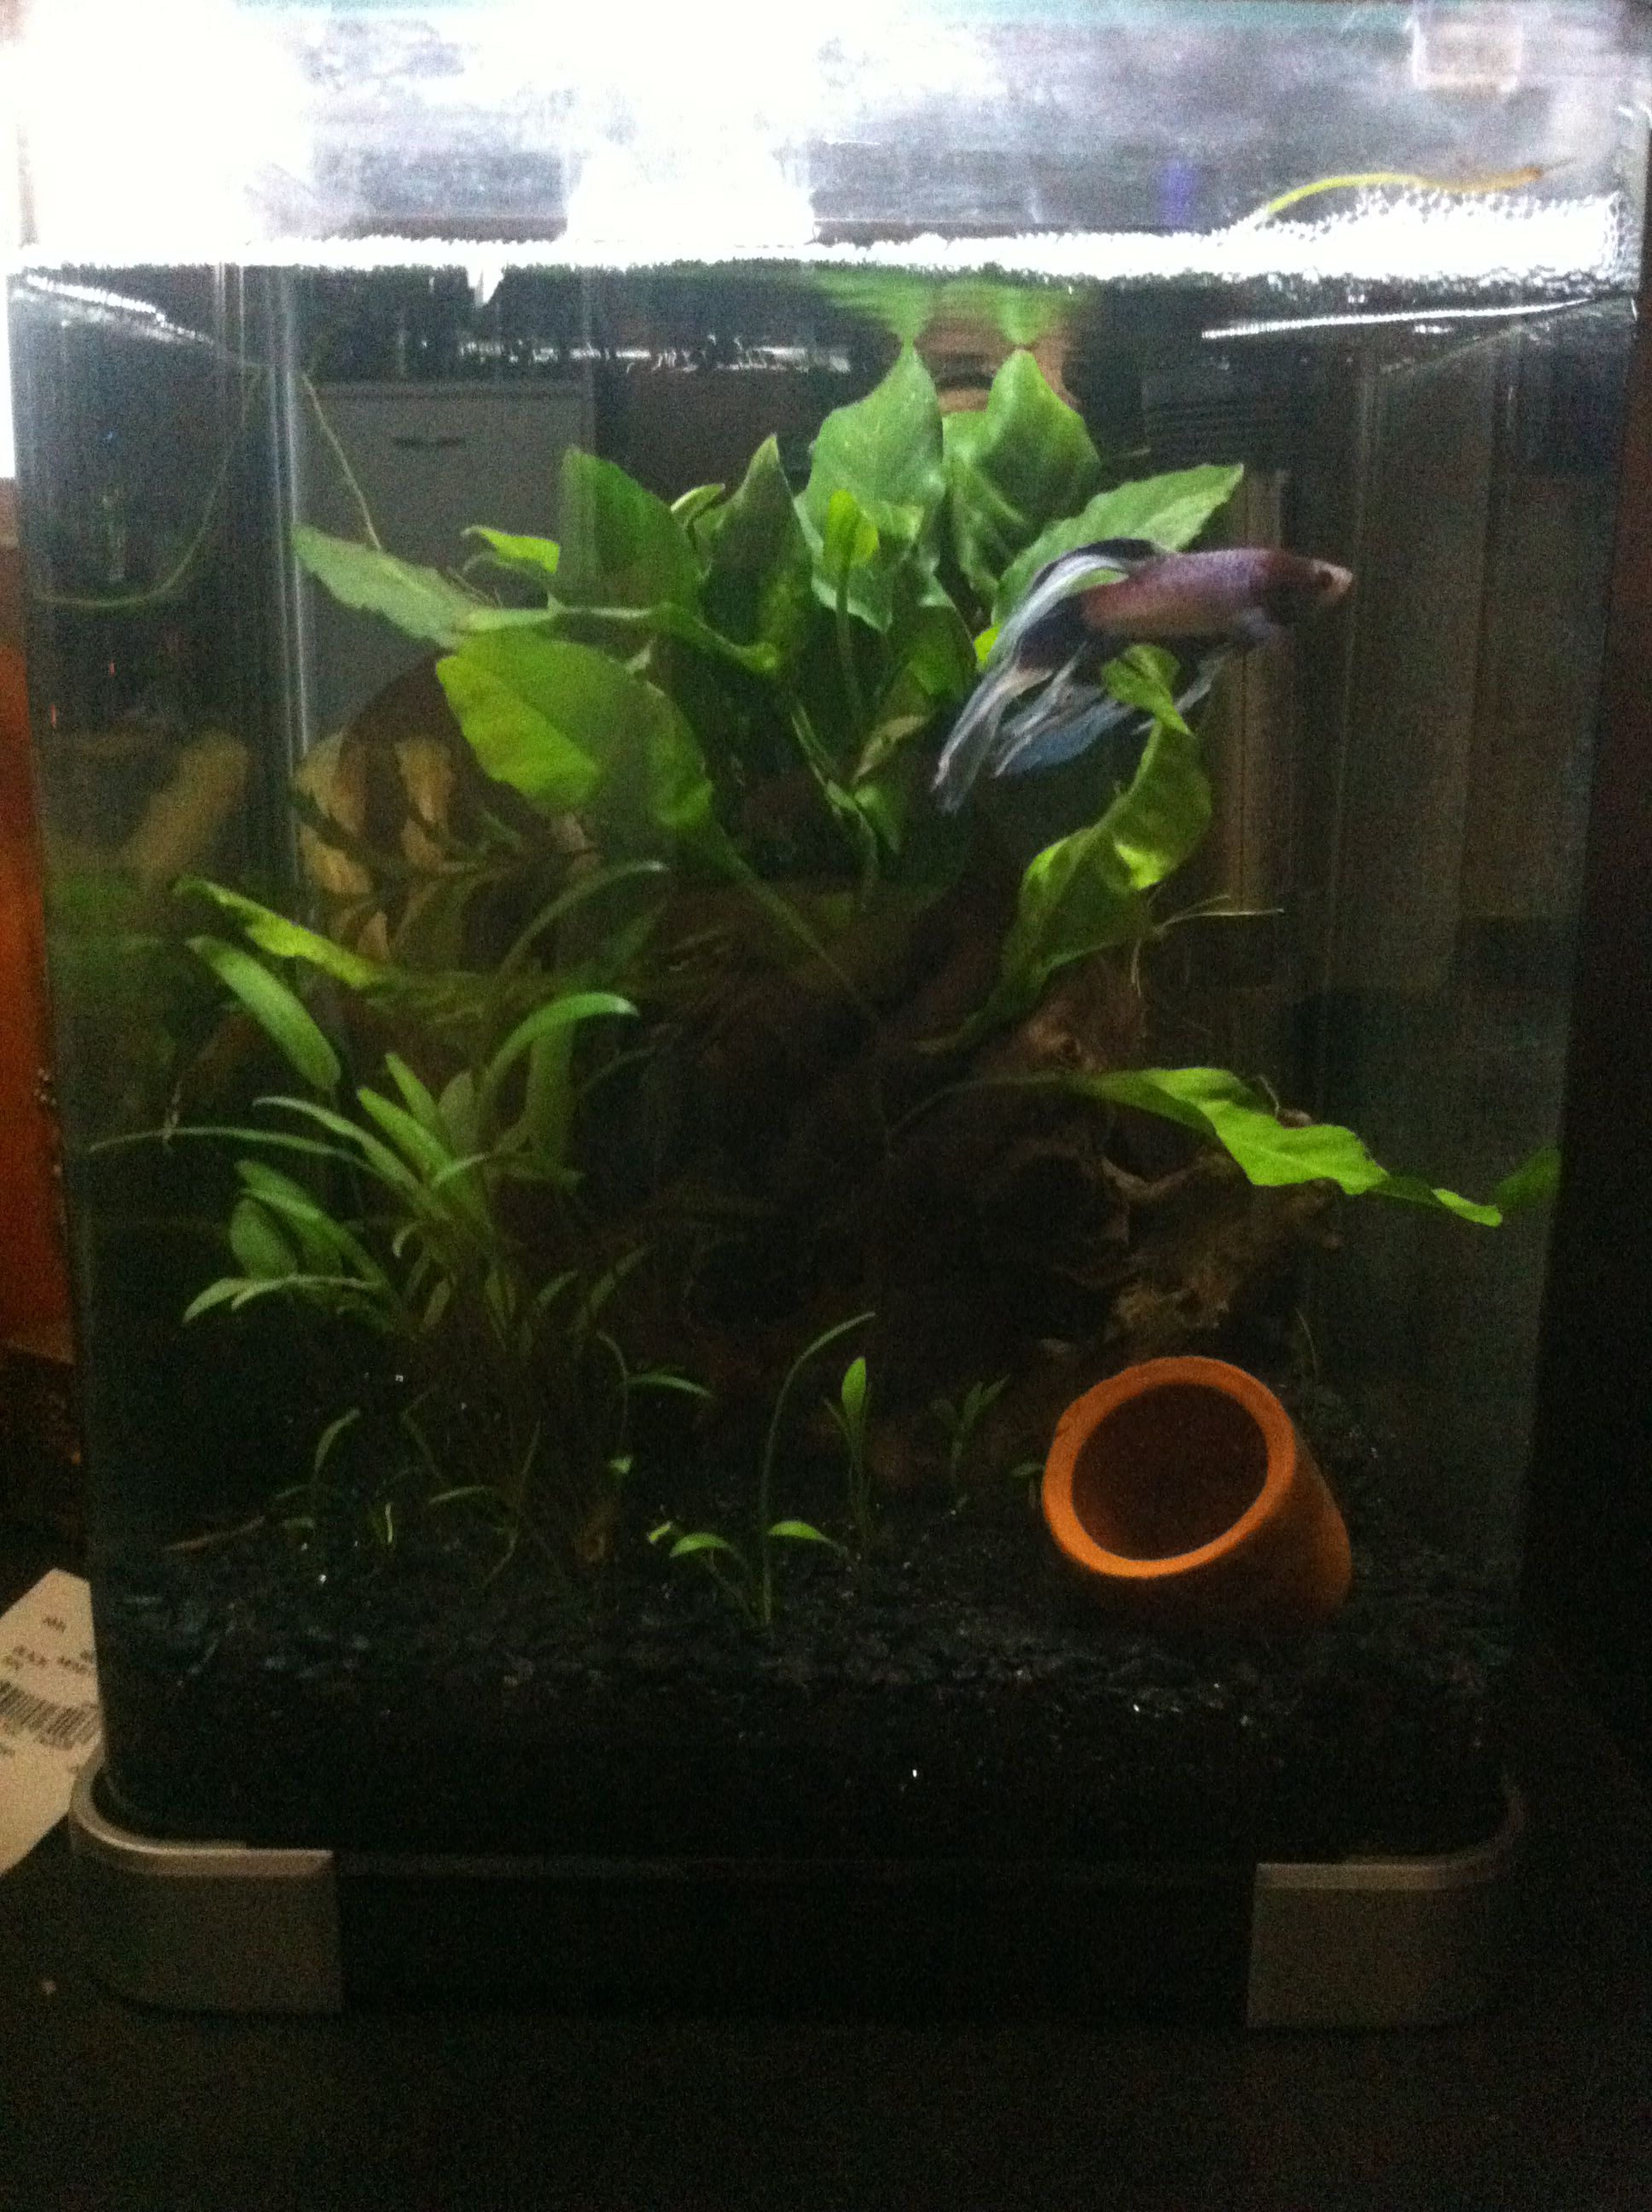 My pretty nano betta tank Not shown are my suicidal Kuhli loaches